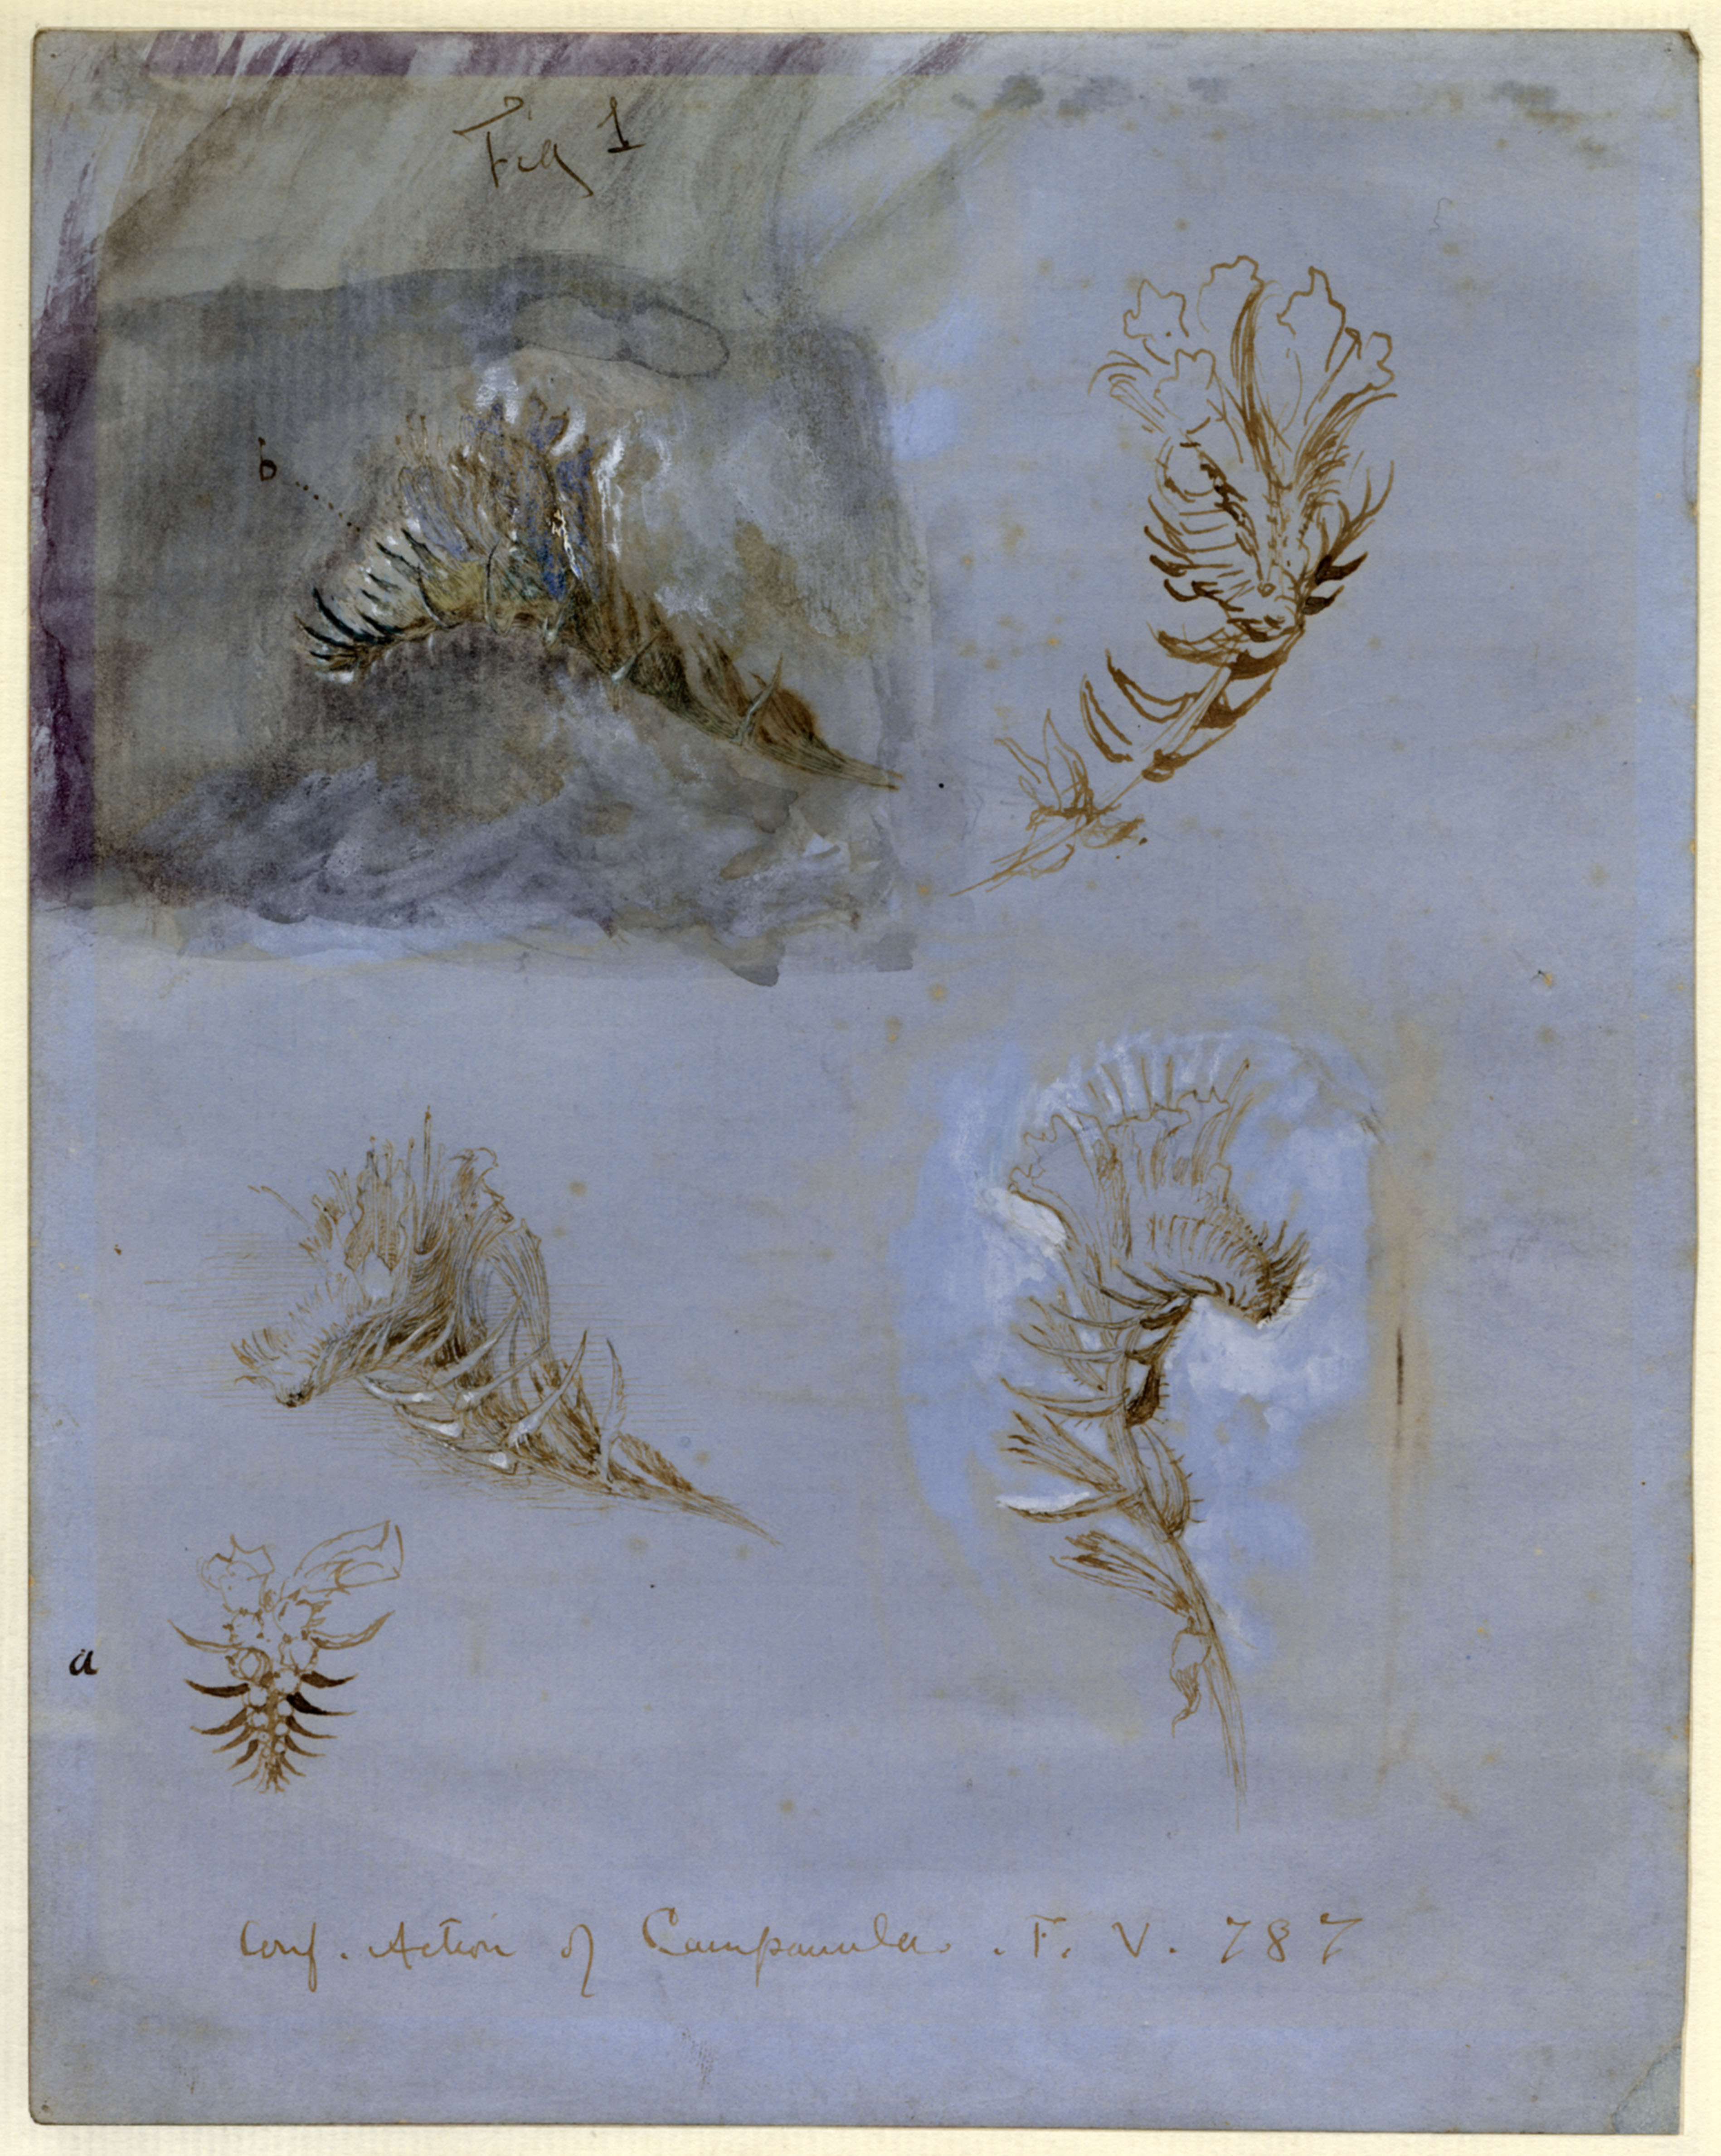 John Ruskin, Action of Campanula, RF1186 © Ruskin Foundation